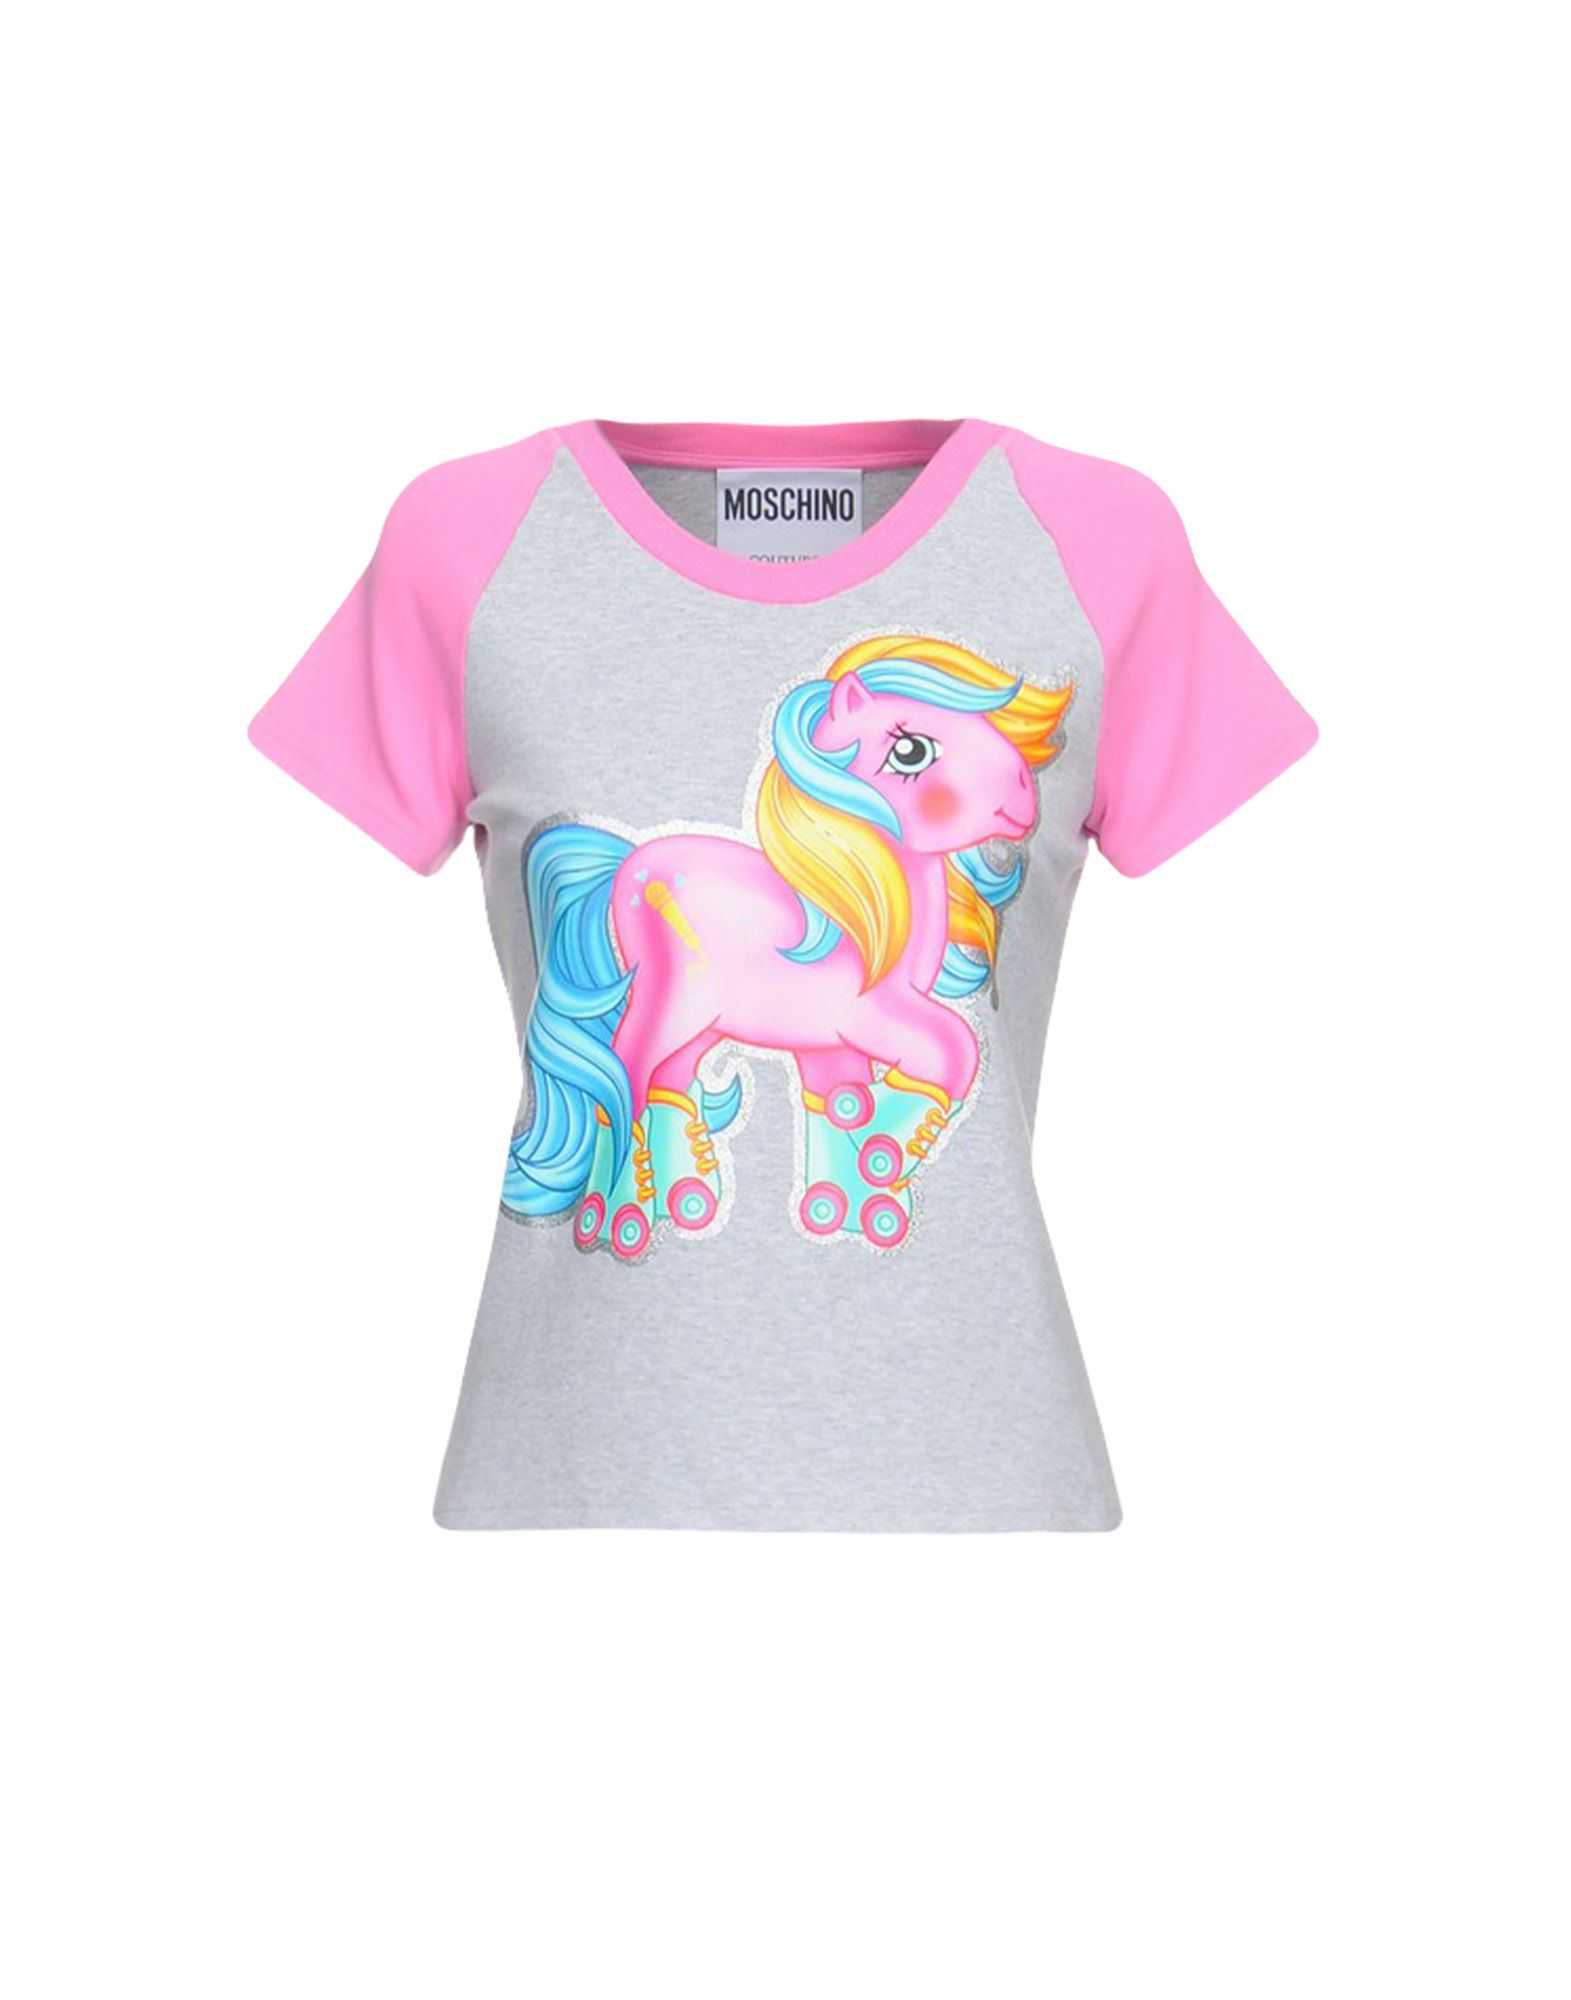 T-Shirt Moschino Donna - Acquista online su pOLWF3